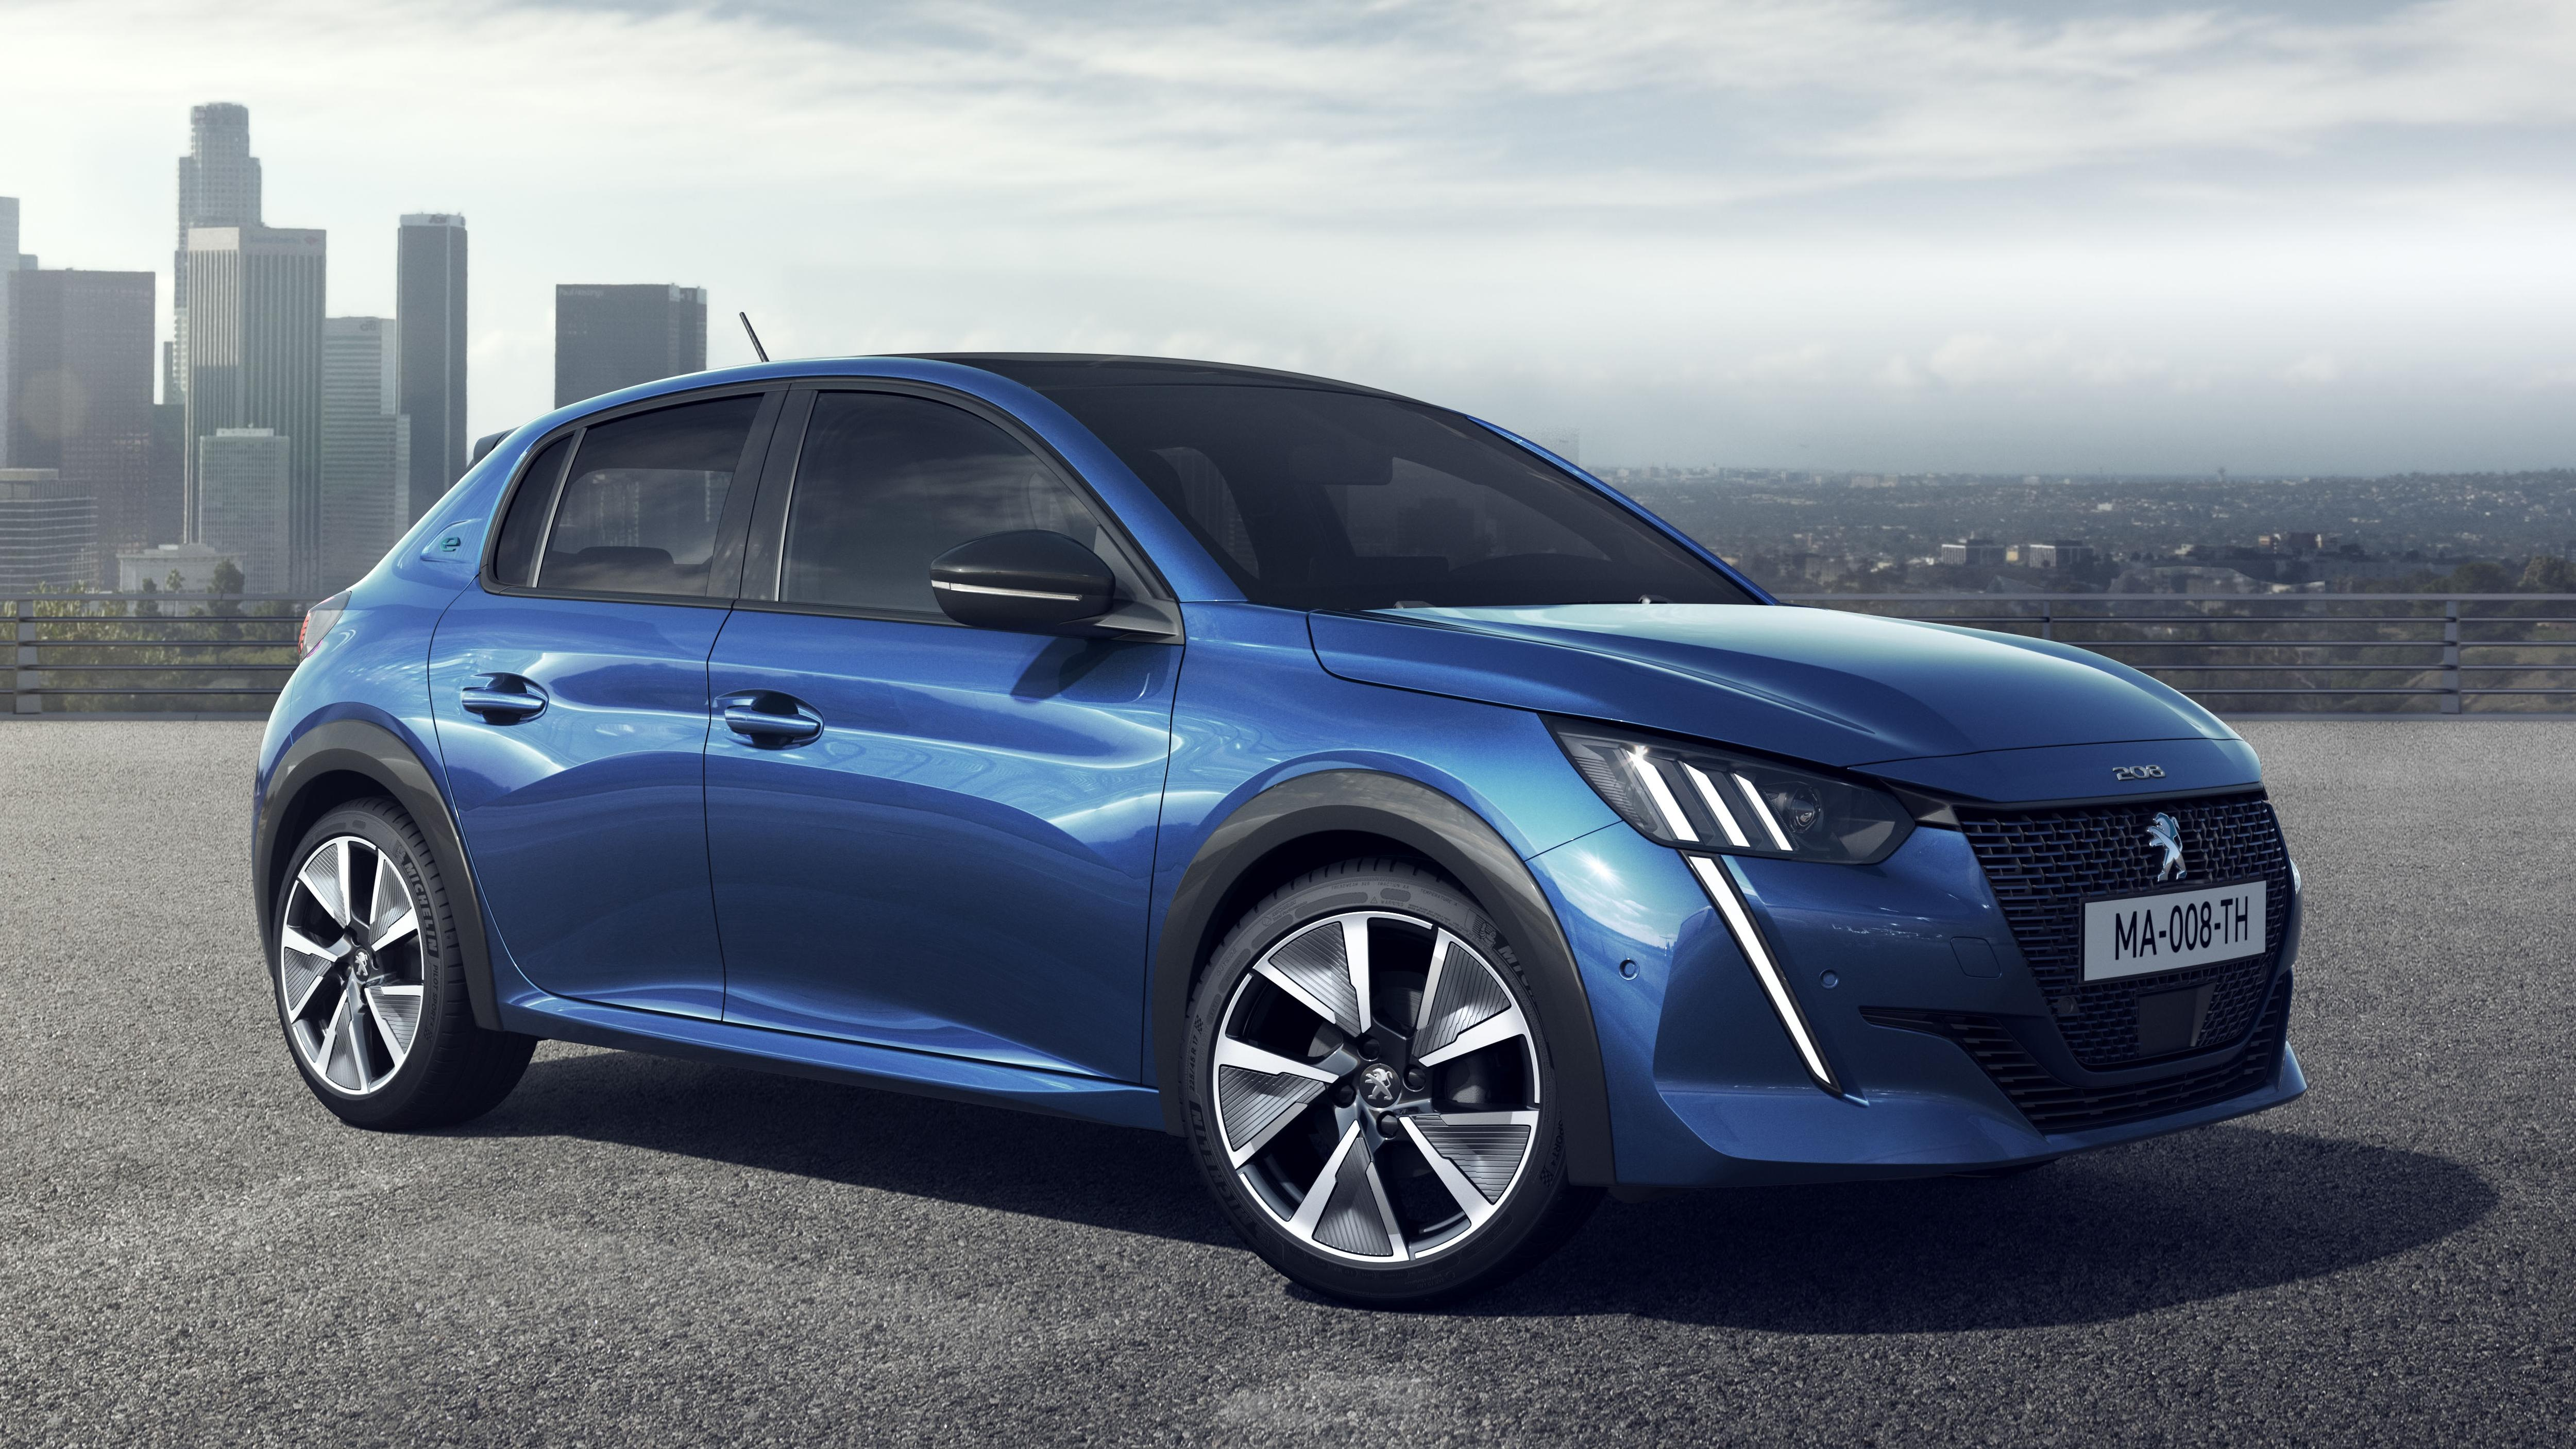 2019 Peugeot 208 Pictures, Photos, Wallpapers.